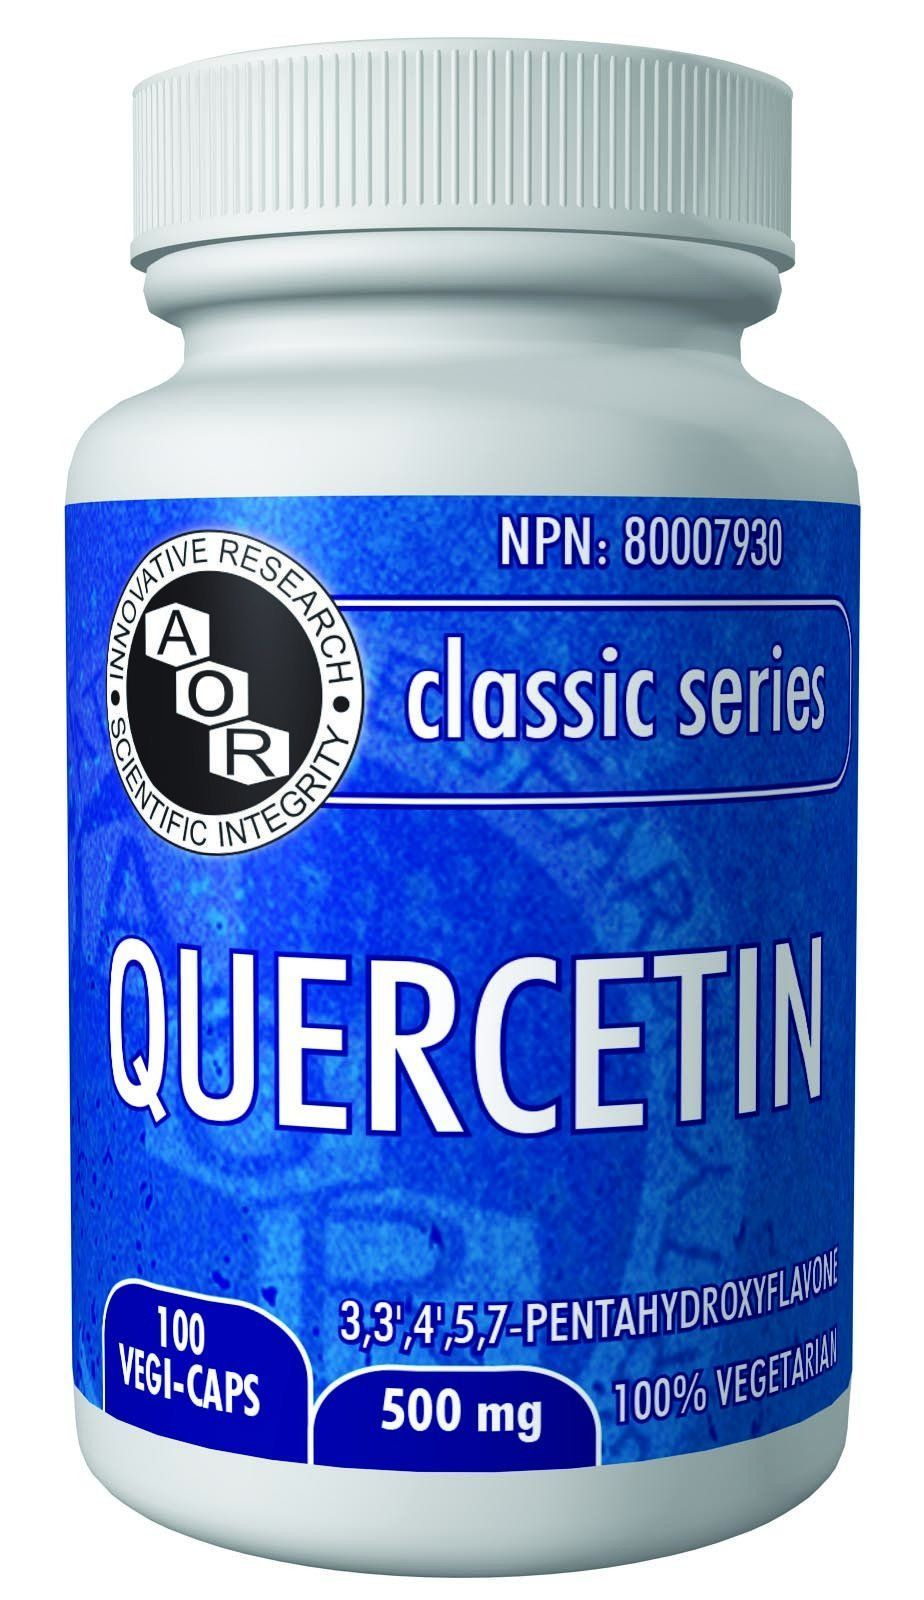 Supplements & Vitamins - AOR - Quercetin, 100 Caps